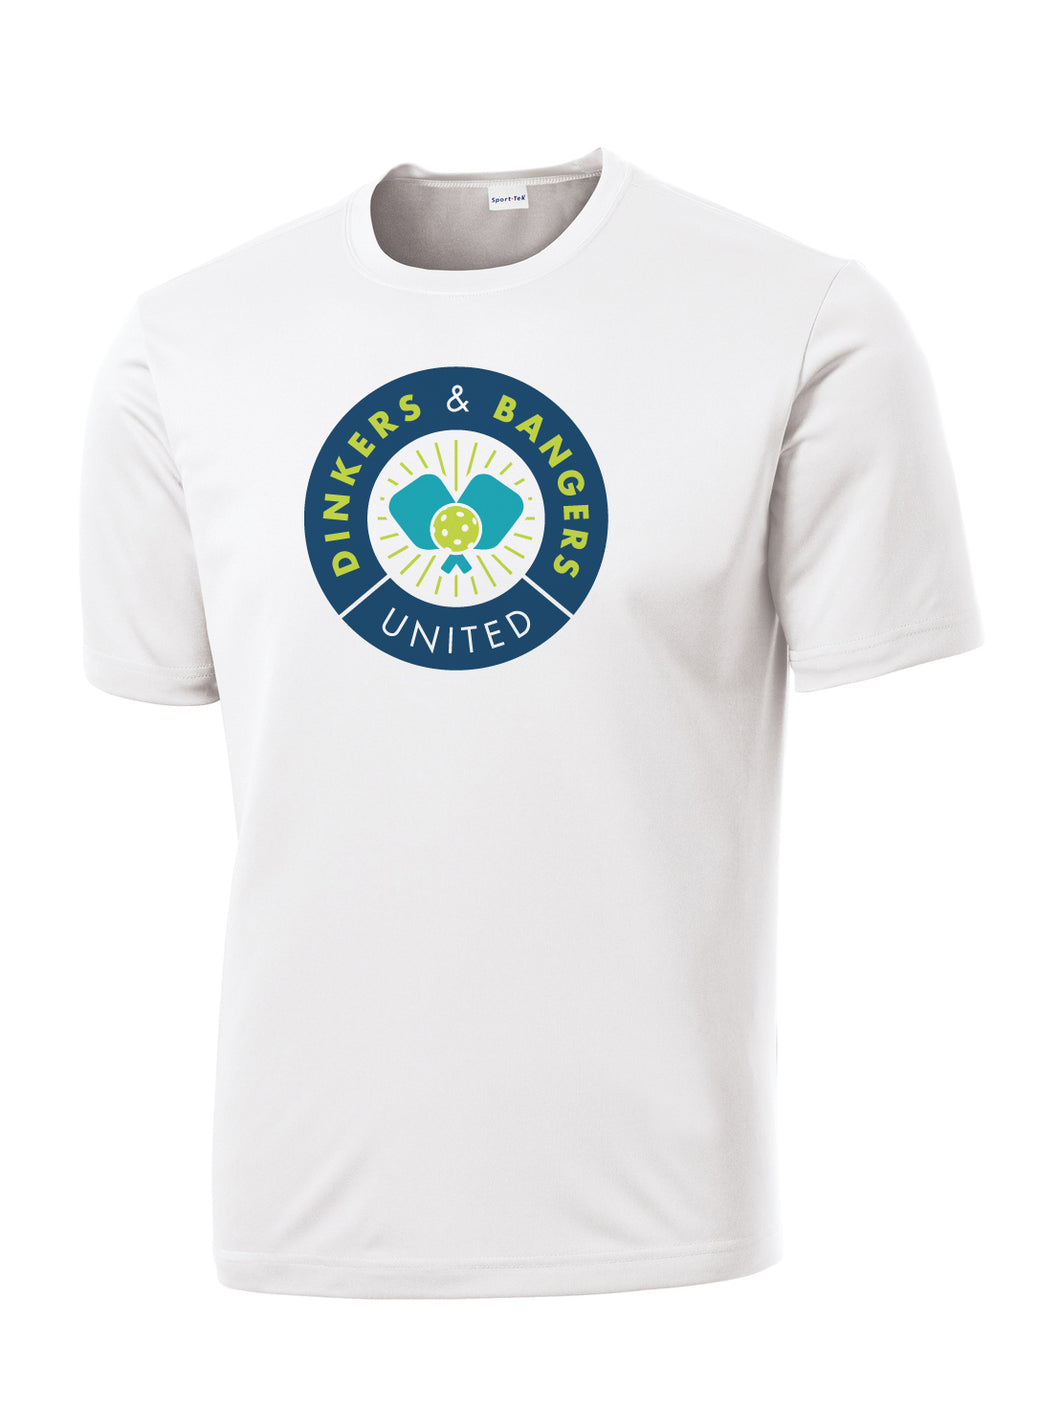 Dinkers & Bangers United - Performance Pickleball Tee - White